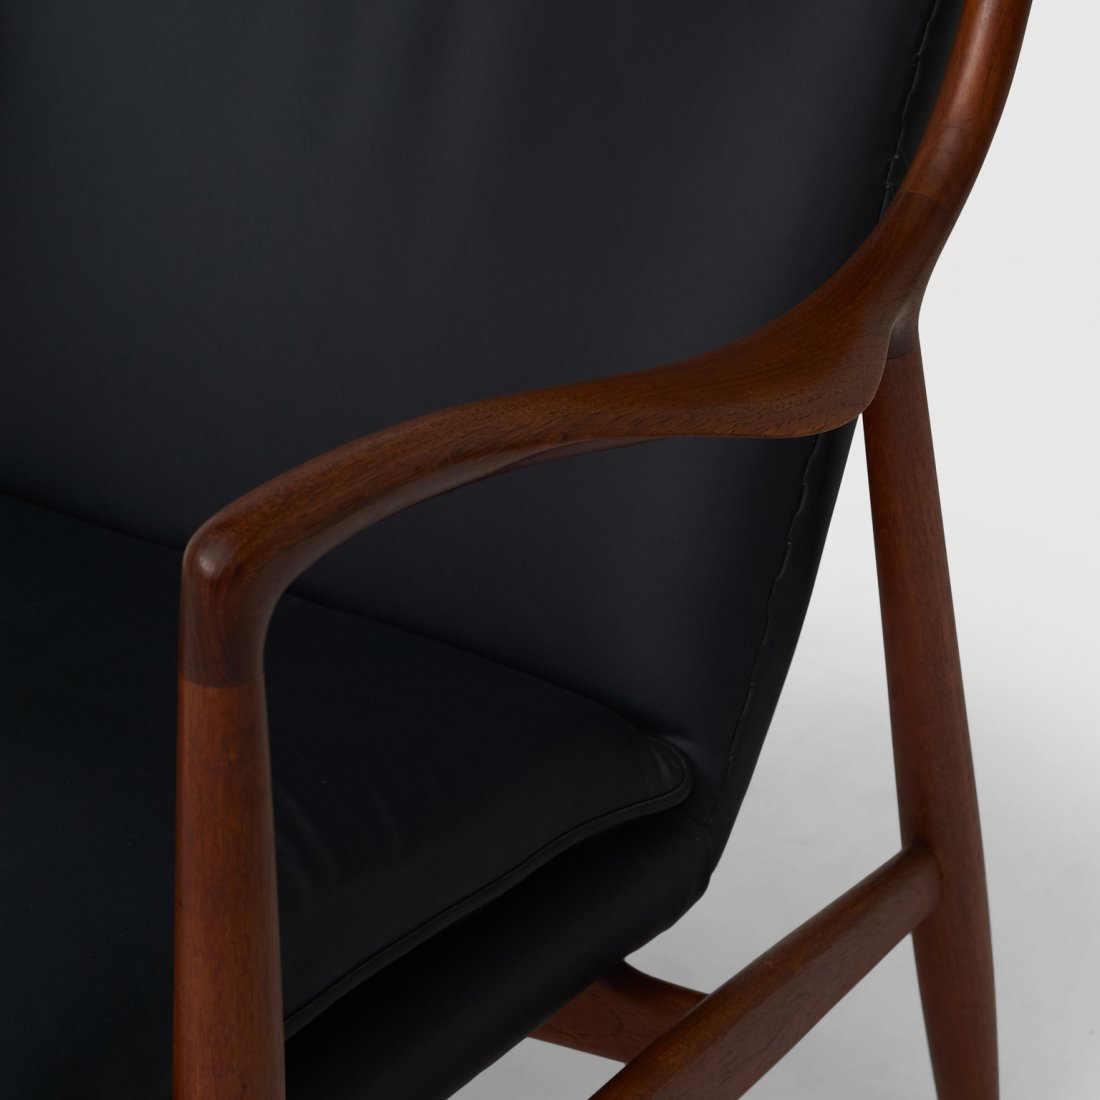 Finn Juhl, Pair of NV45 Chairs for Niels Vodder - 5